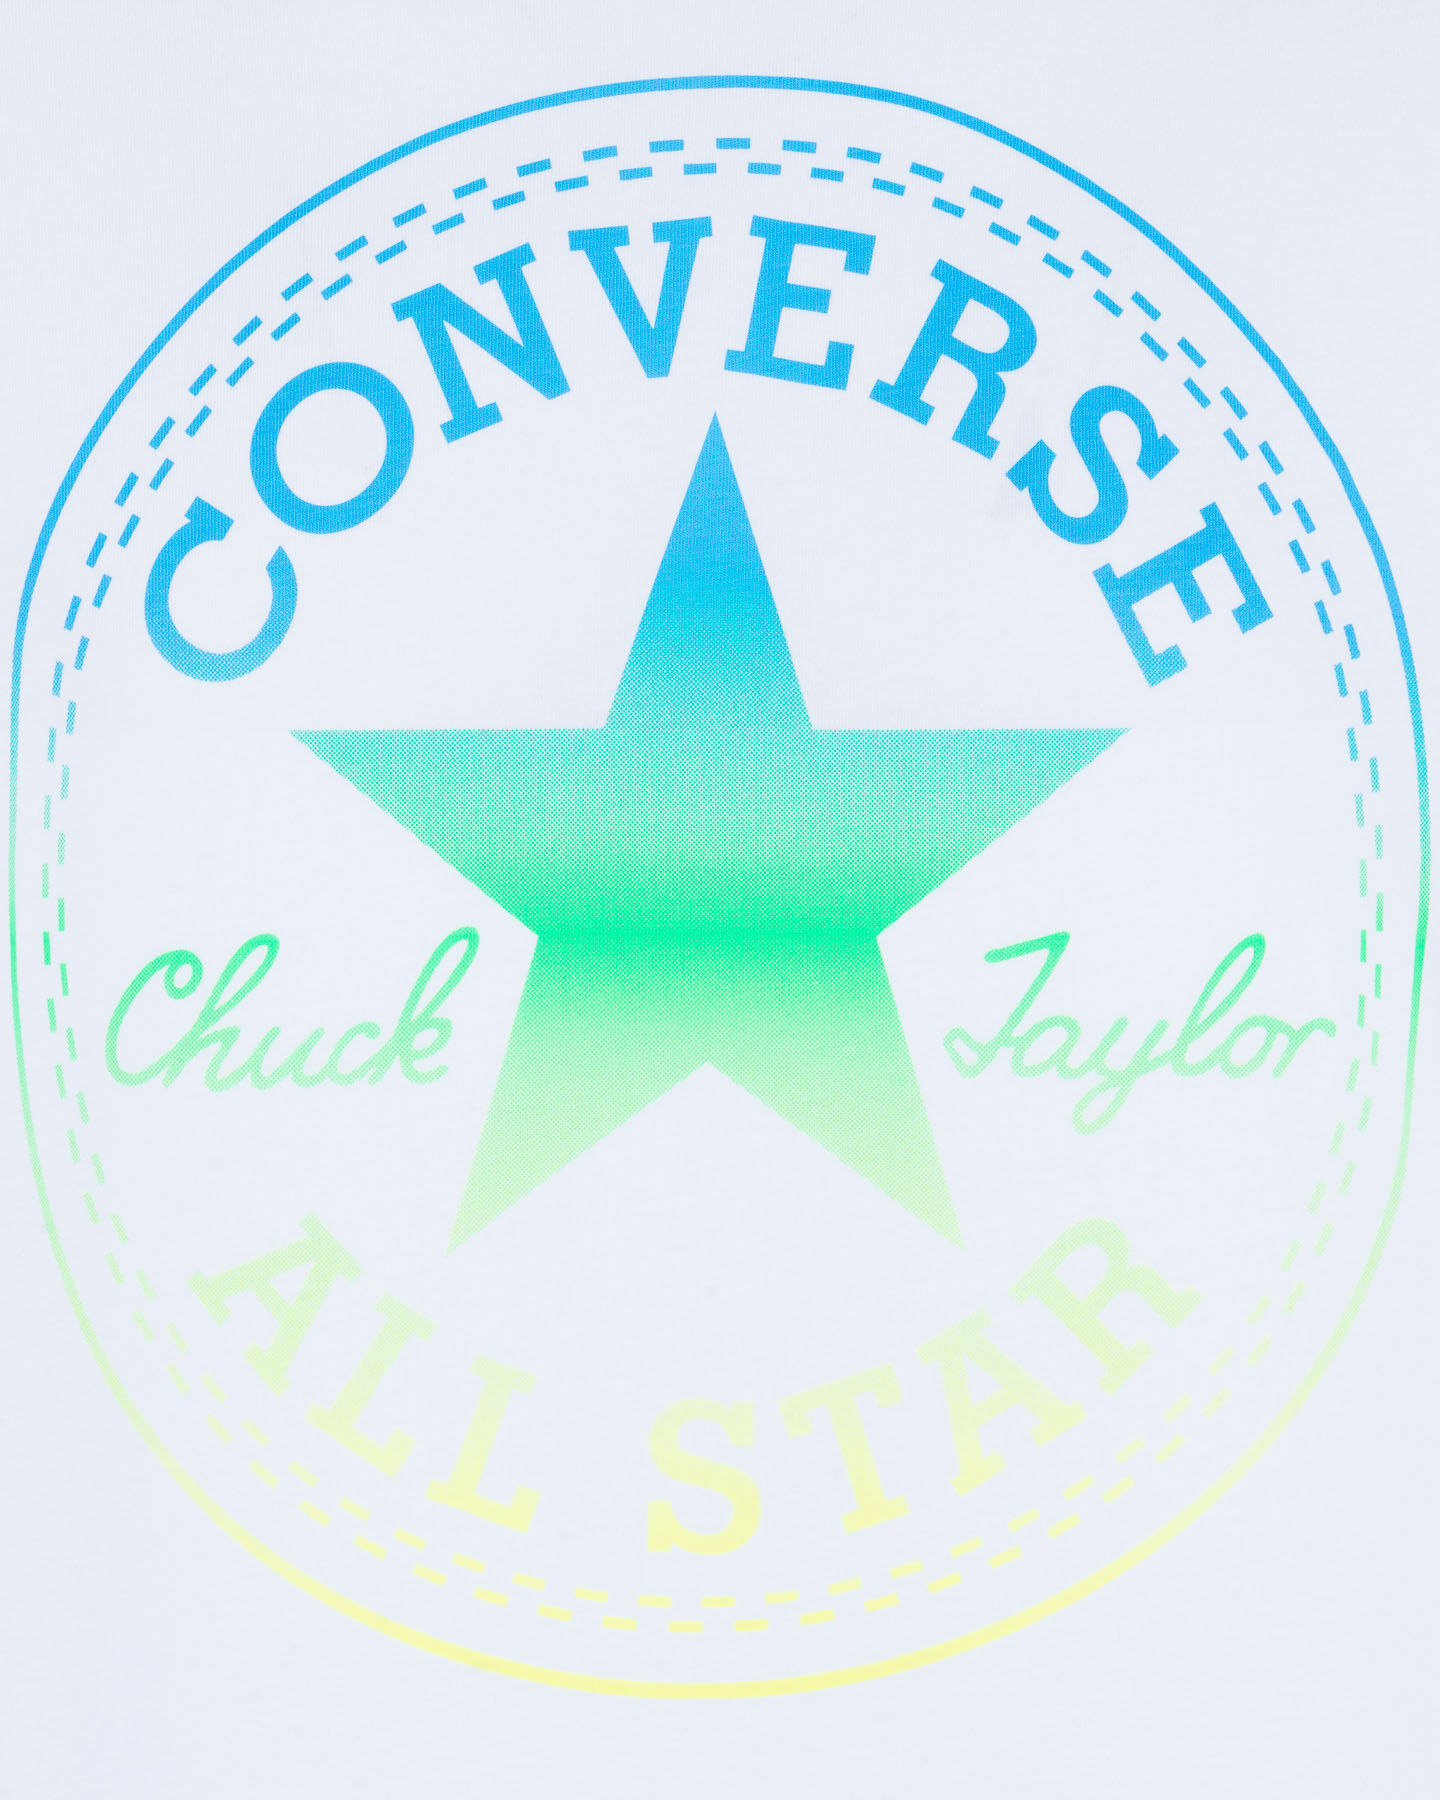 T-Shirt CONVERSE ALL STAR CHUCH TAYLOR LOGO M S5181091 scatto 2